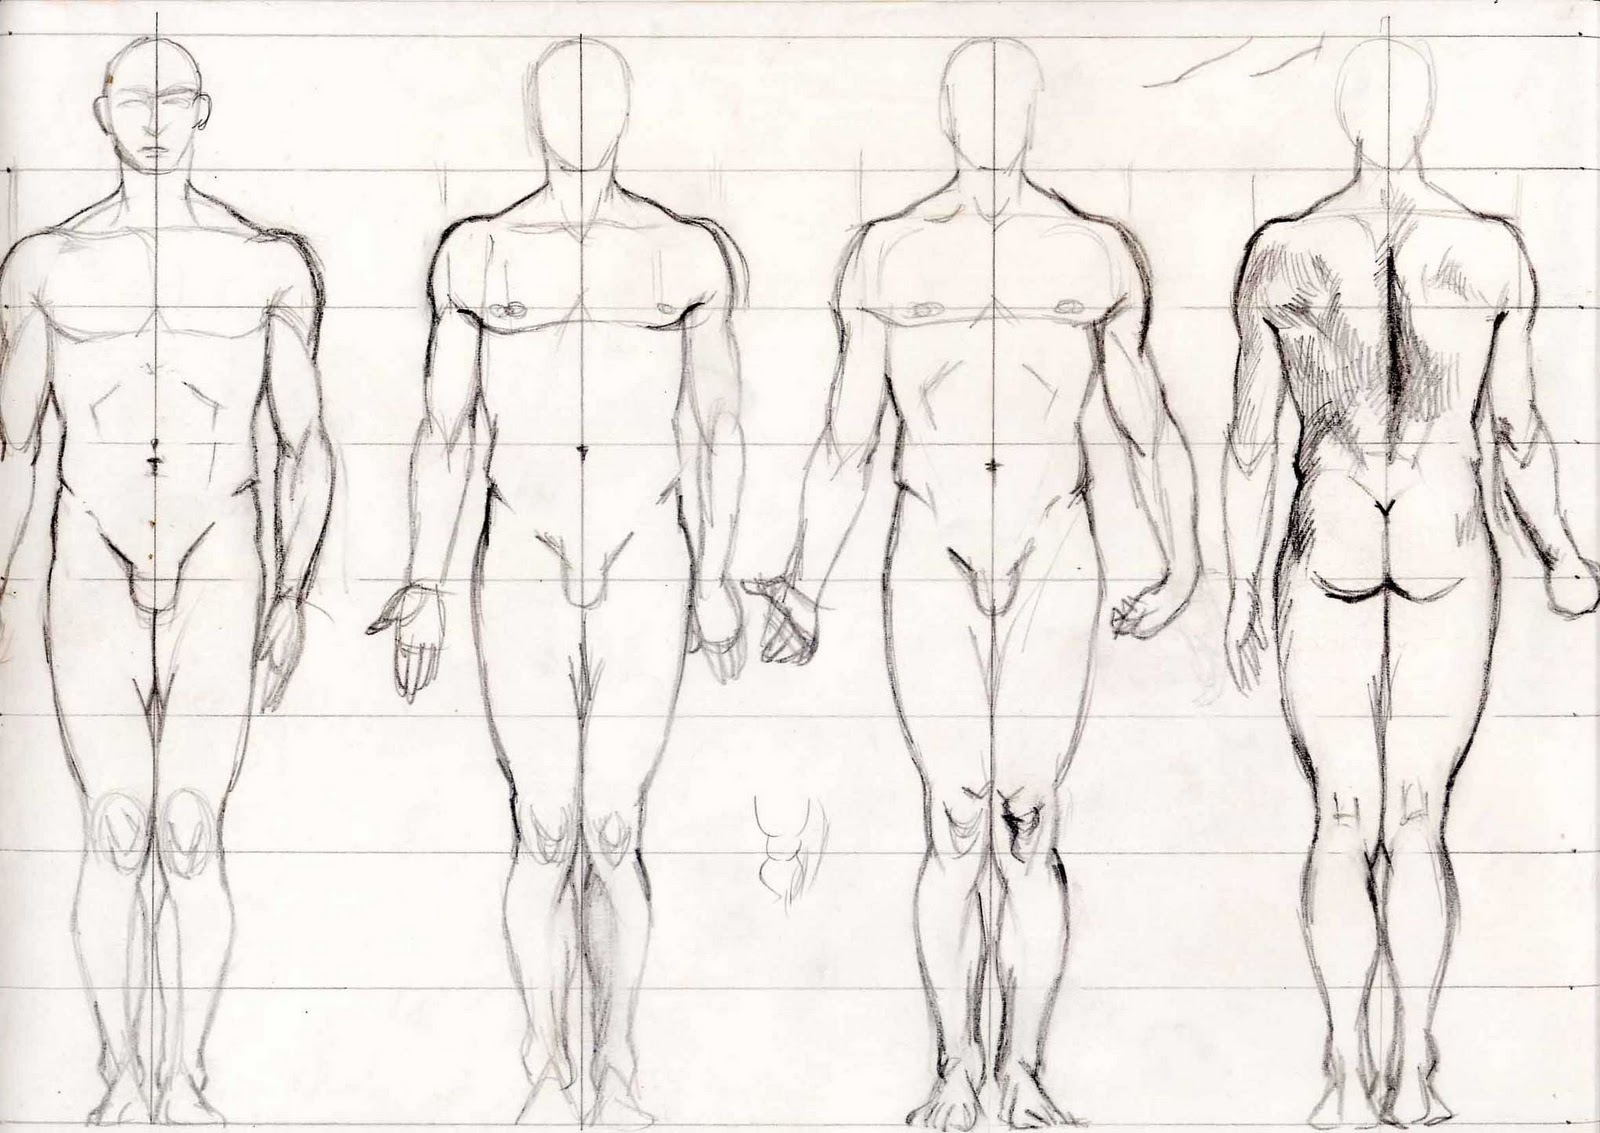 Steps On How To Draw Human Body Pencil Sketch